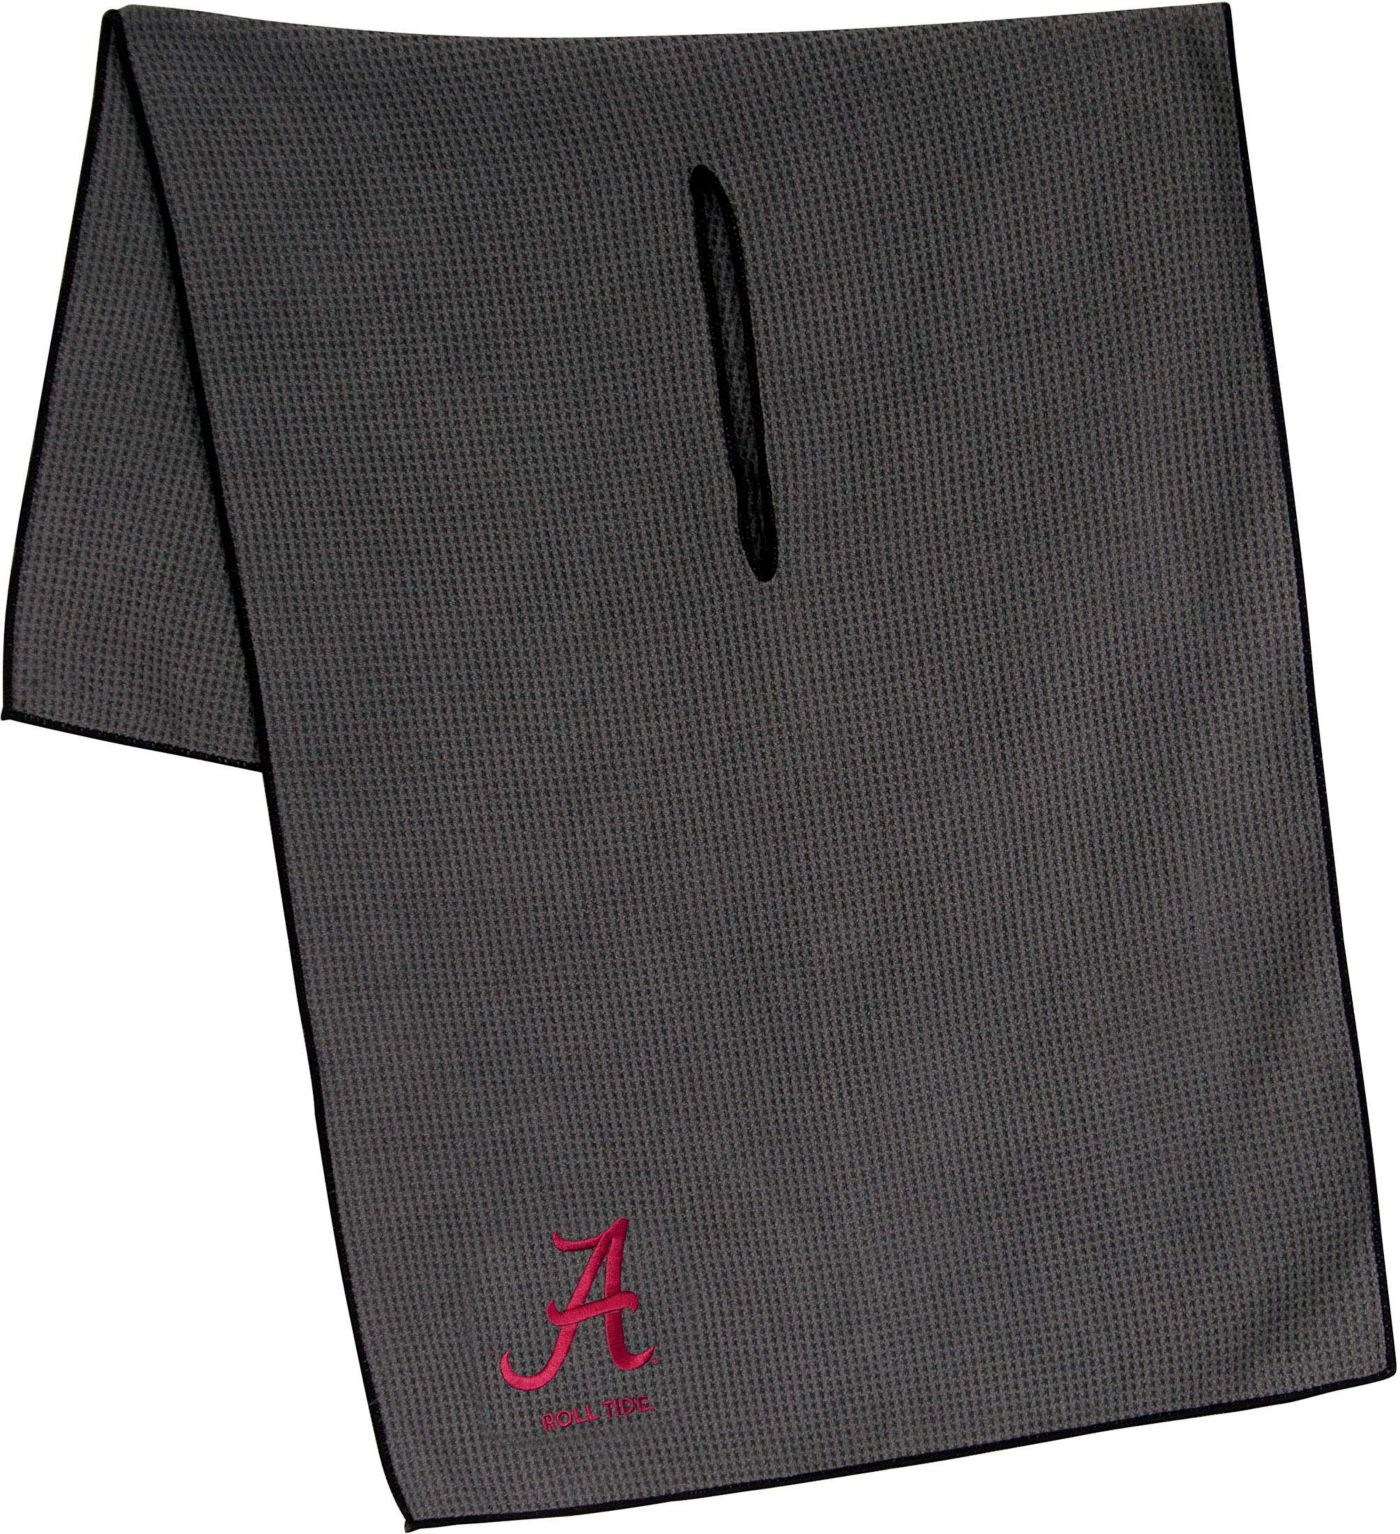 "Team Effort Alabama Crimson Tide 19"" x 41"" Microfiber Golf Towel"